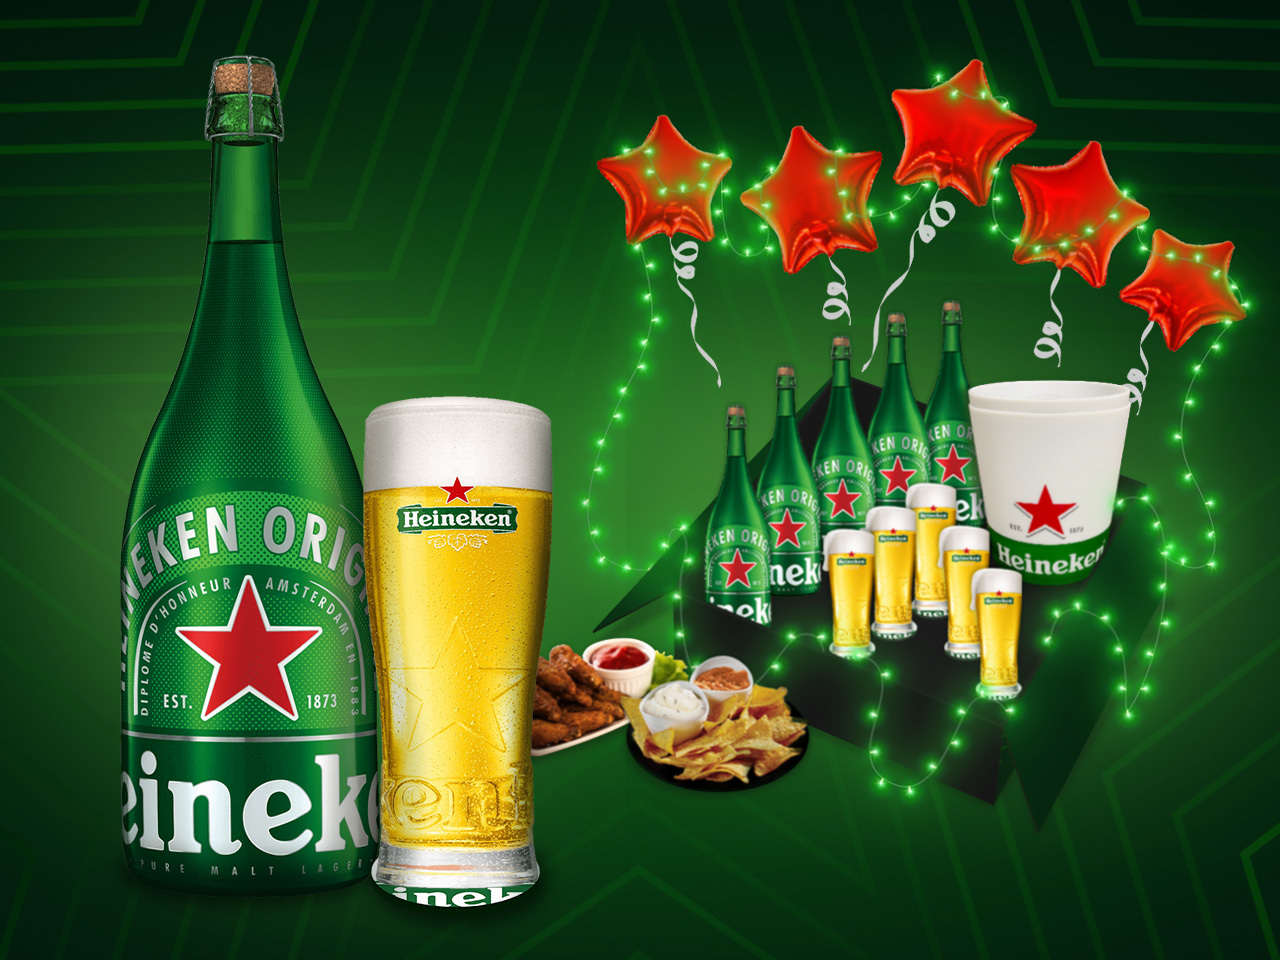 Here's how everyone partied together in the same location at Heineken's 5-Star Christmas Party without being physically together